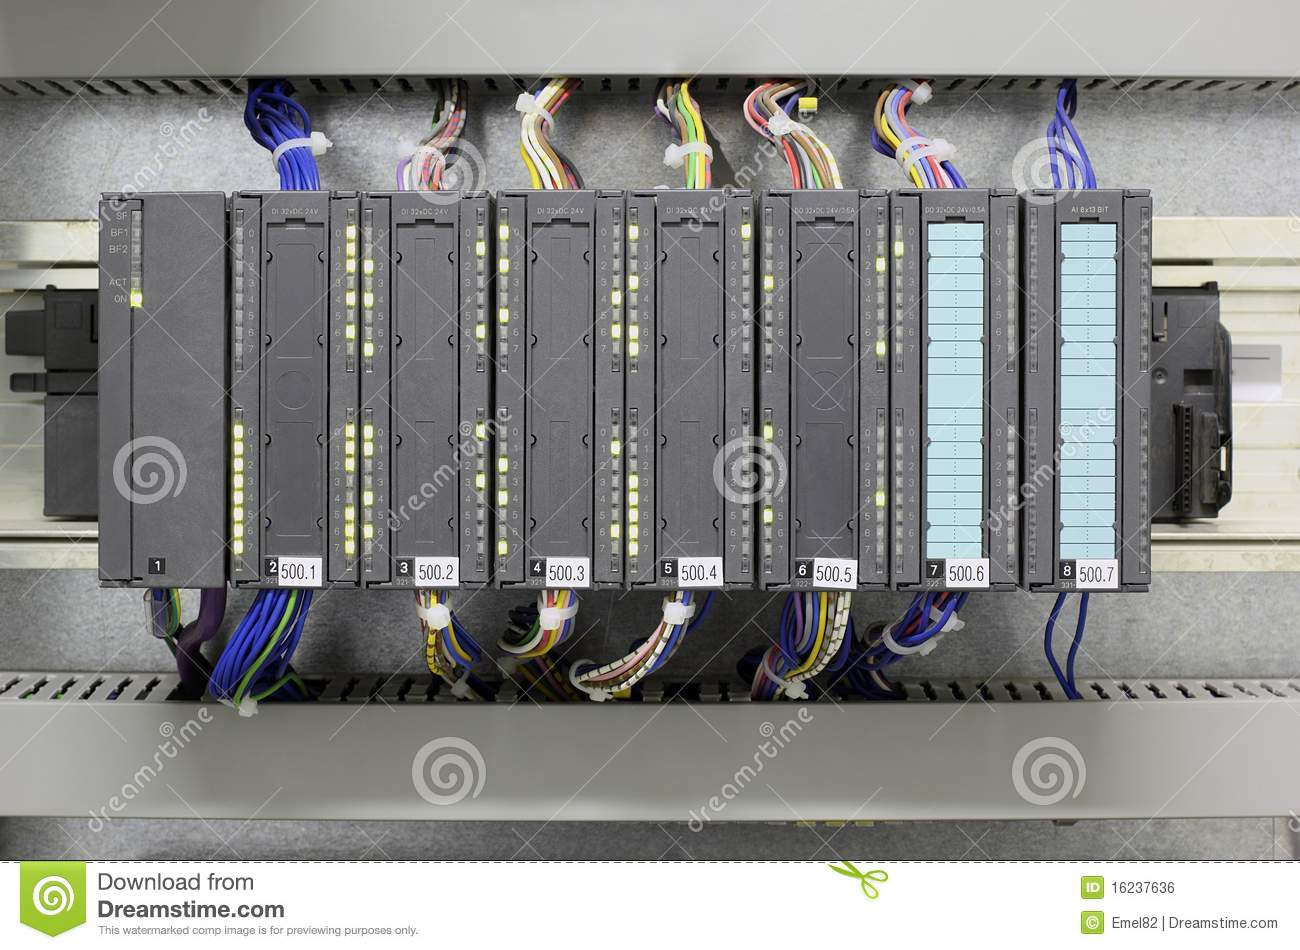 Guitar1b together with Electrical additionally Watch additionally United Kingdom Ireland further Royalty Free Stock Image Industrial Plc Image16237636. on travel all wiring diagram